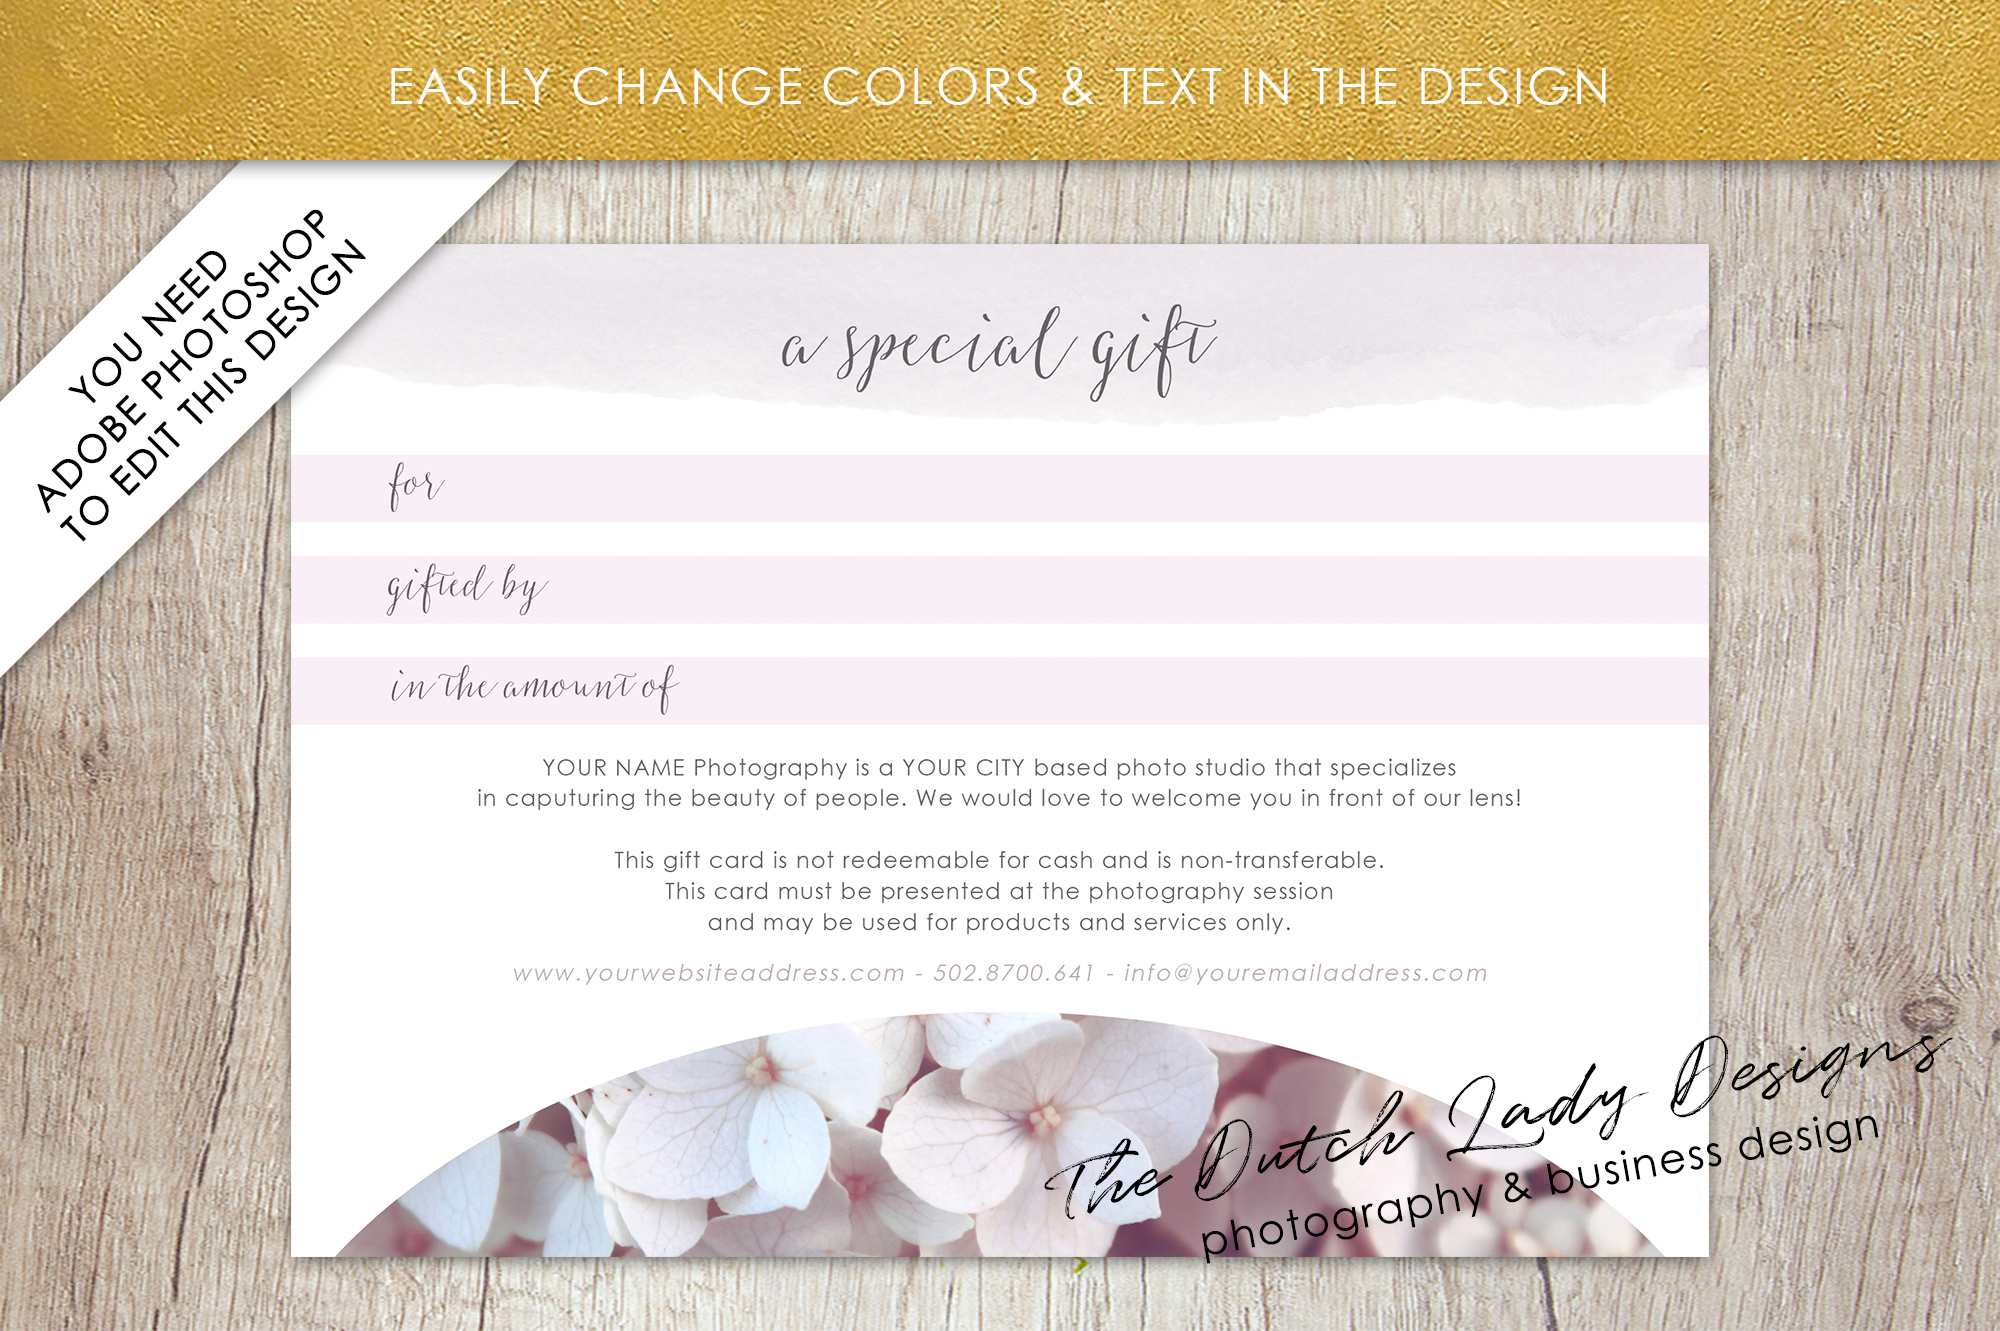 Photo Gift Card Template for Adobe Photoshop - #52 example image 5